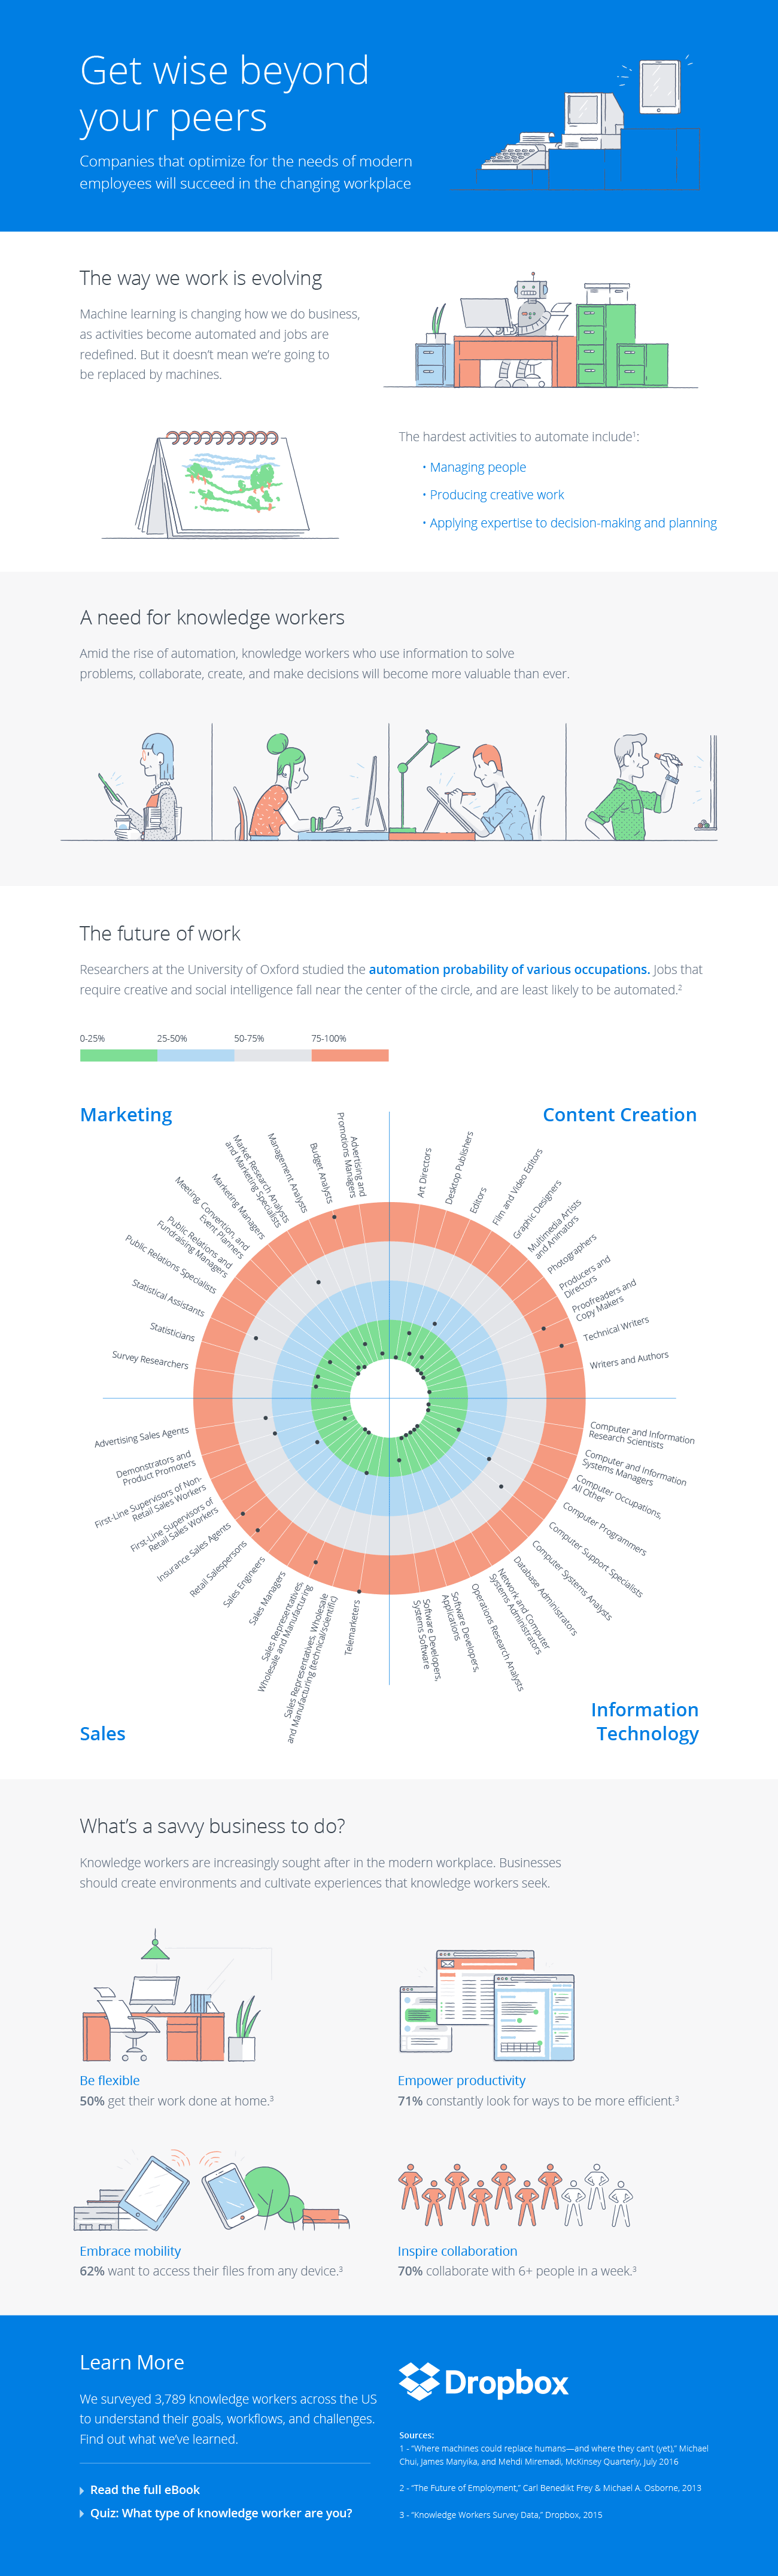 Dropbox knowledge worker infographic. Follow link below for text description.